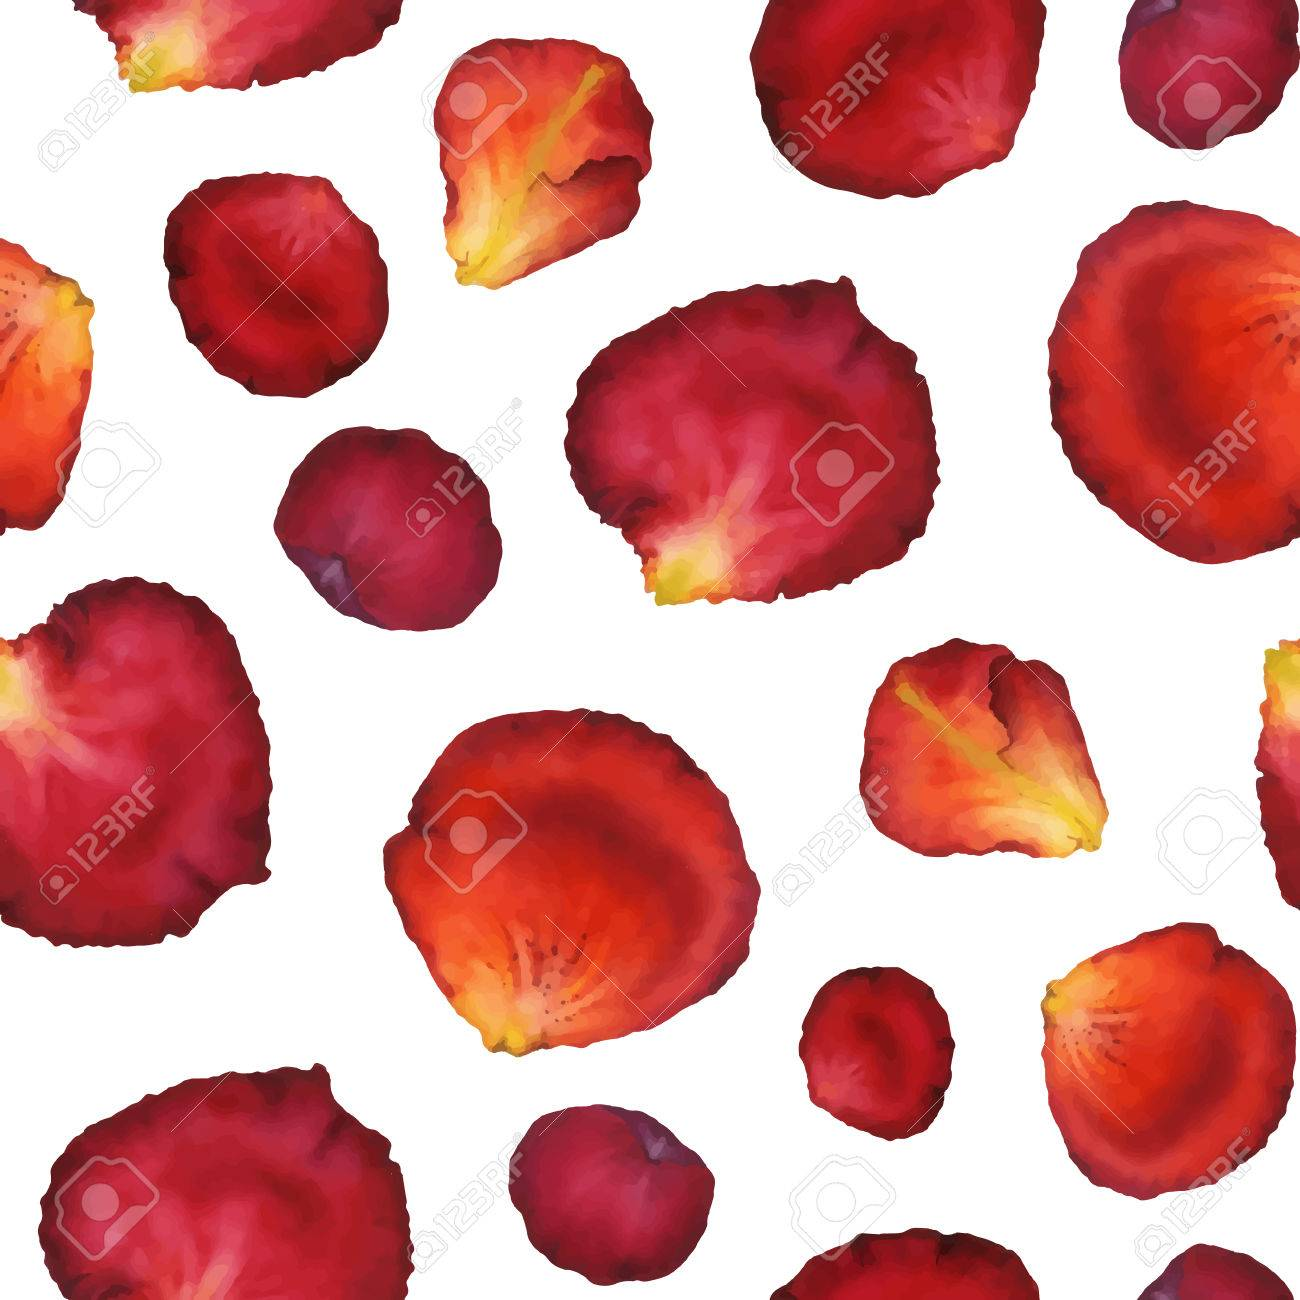 Watercolor Seamless Pattern Of Red Rose Petals Hand Painted